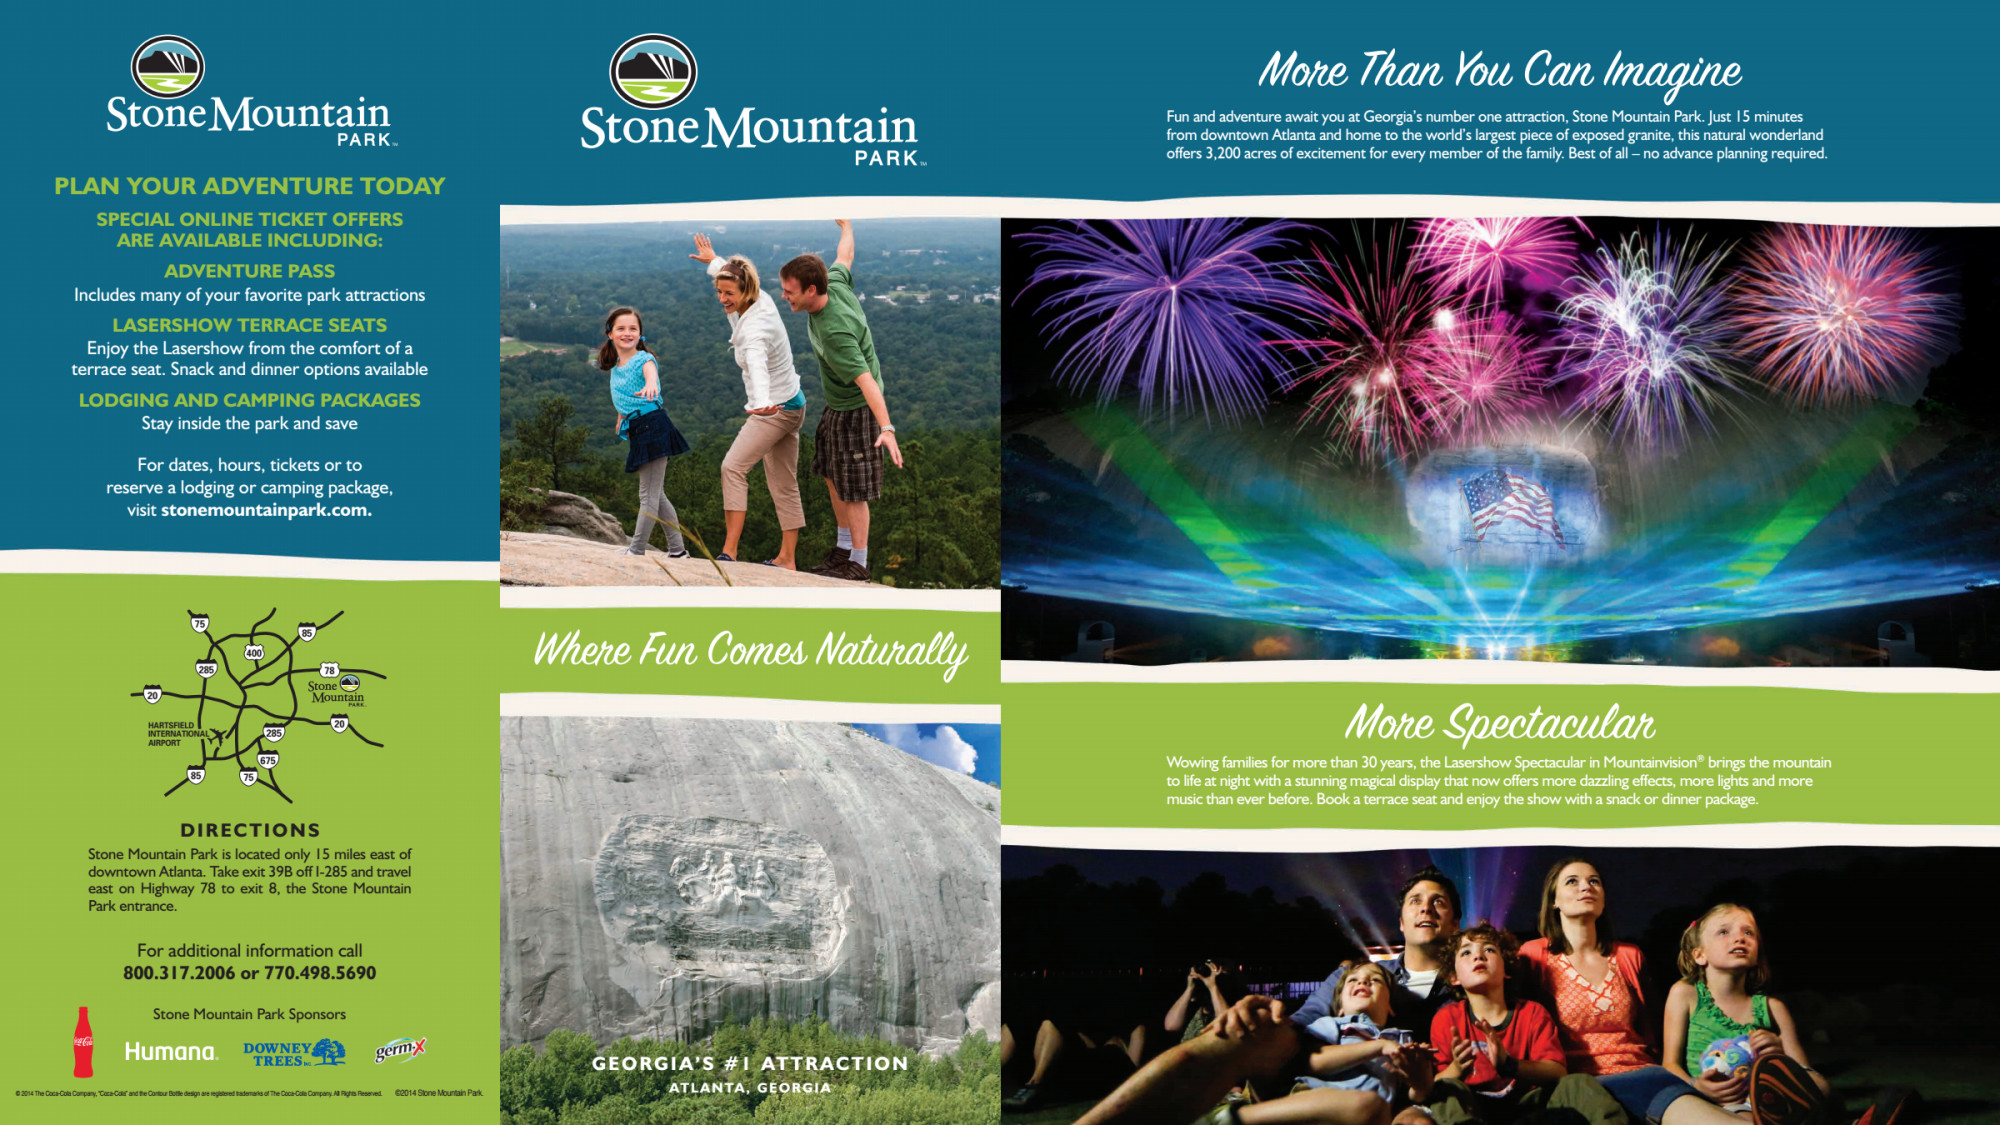 stone mountain package deals